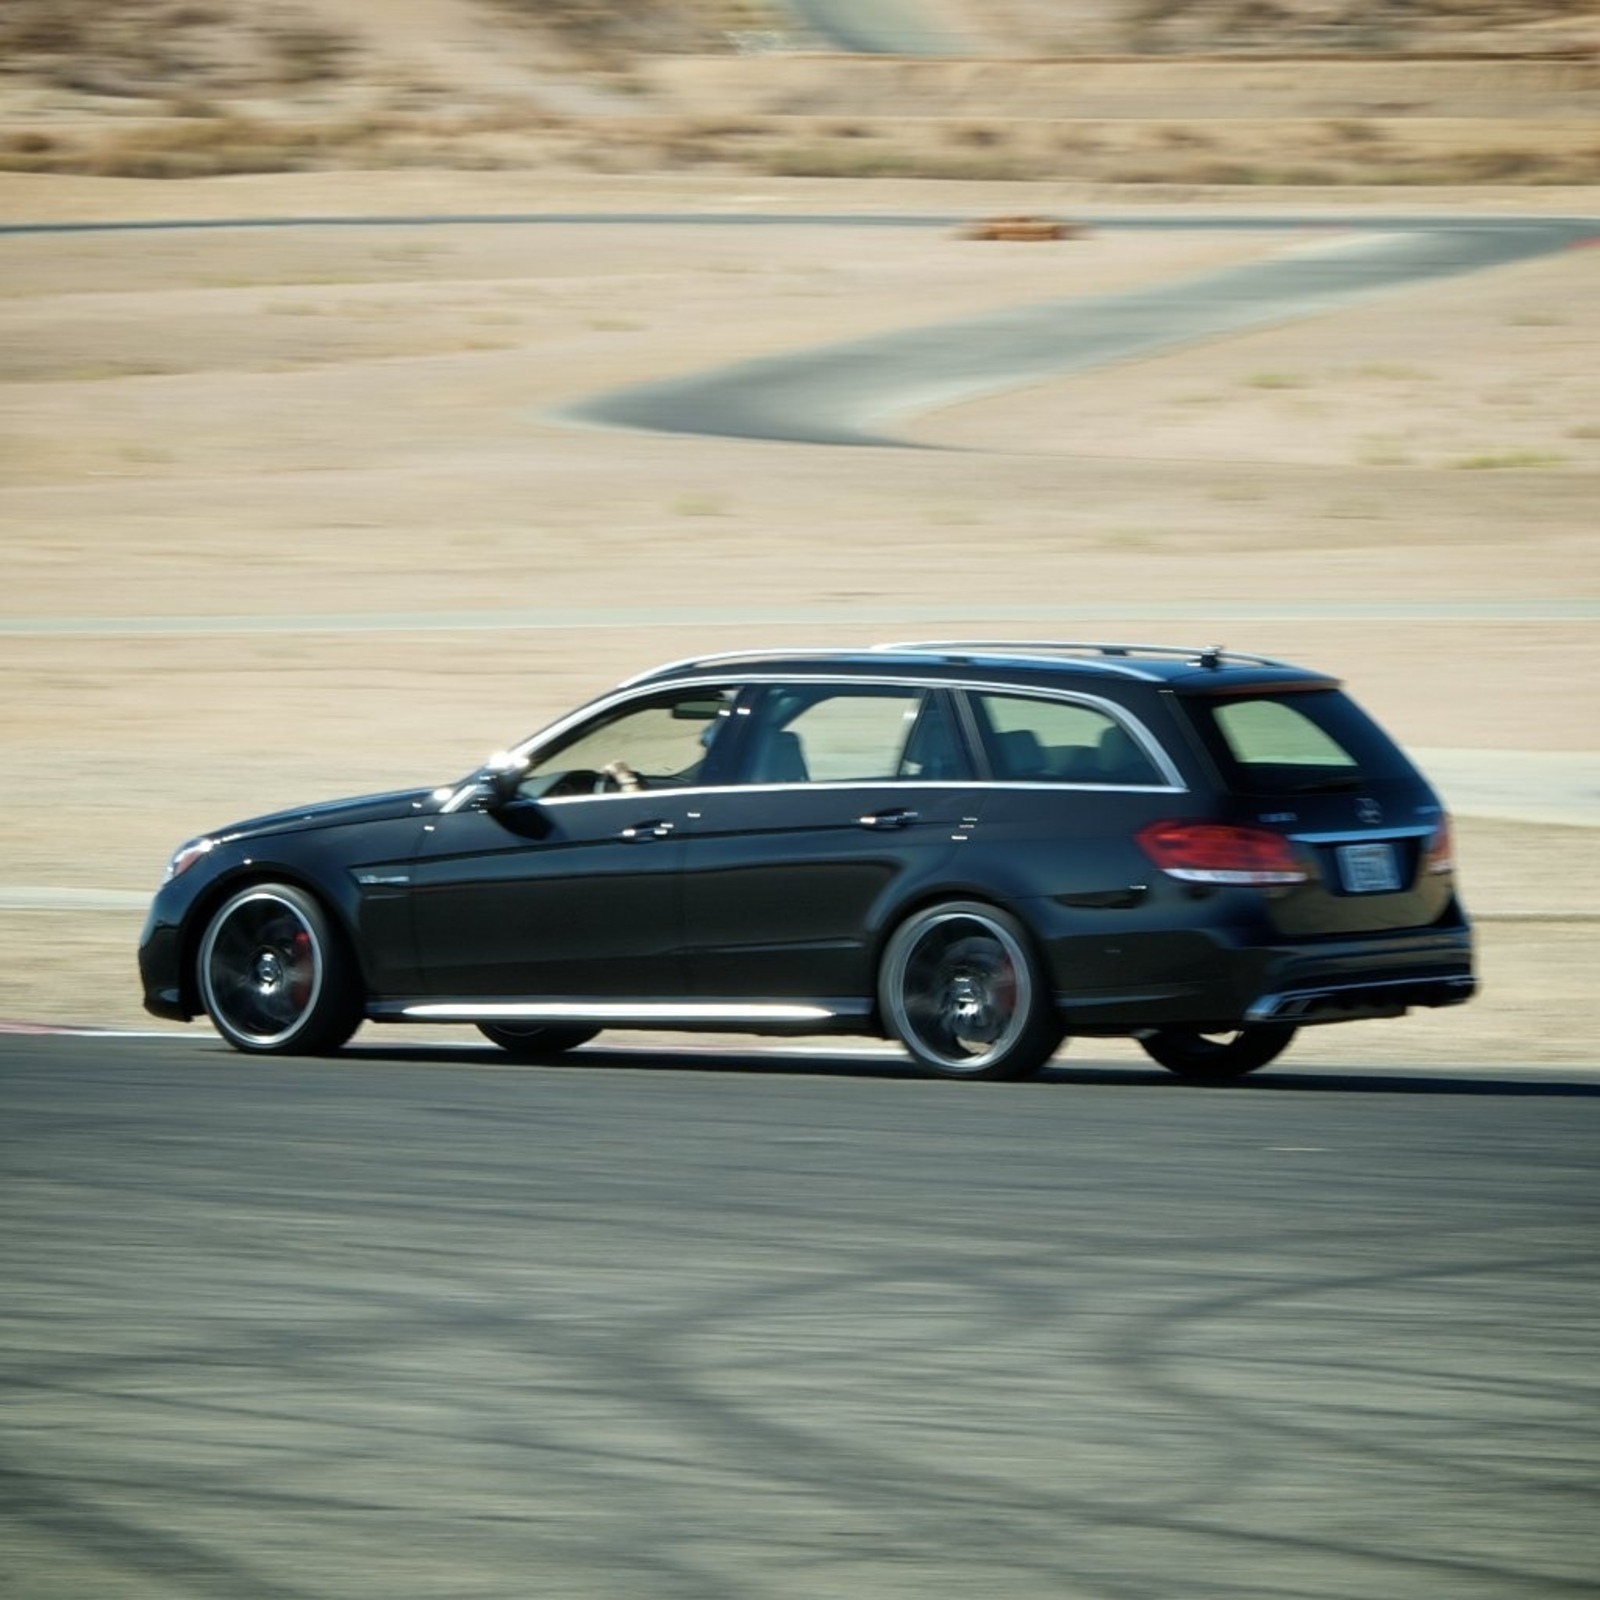 Performance shootout 2014 drag race mercedes benz e63 for Performance mercedes benz